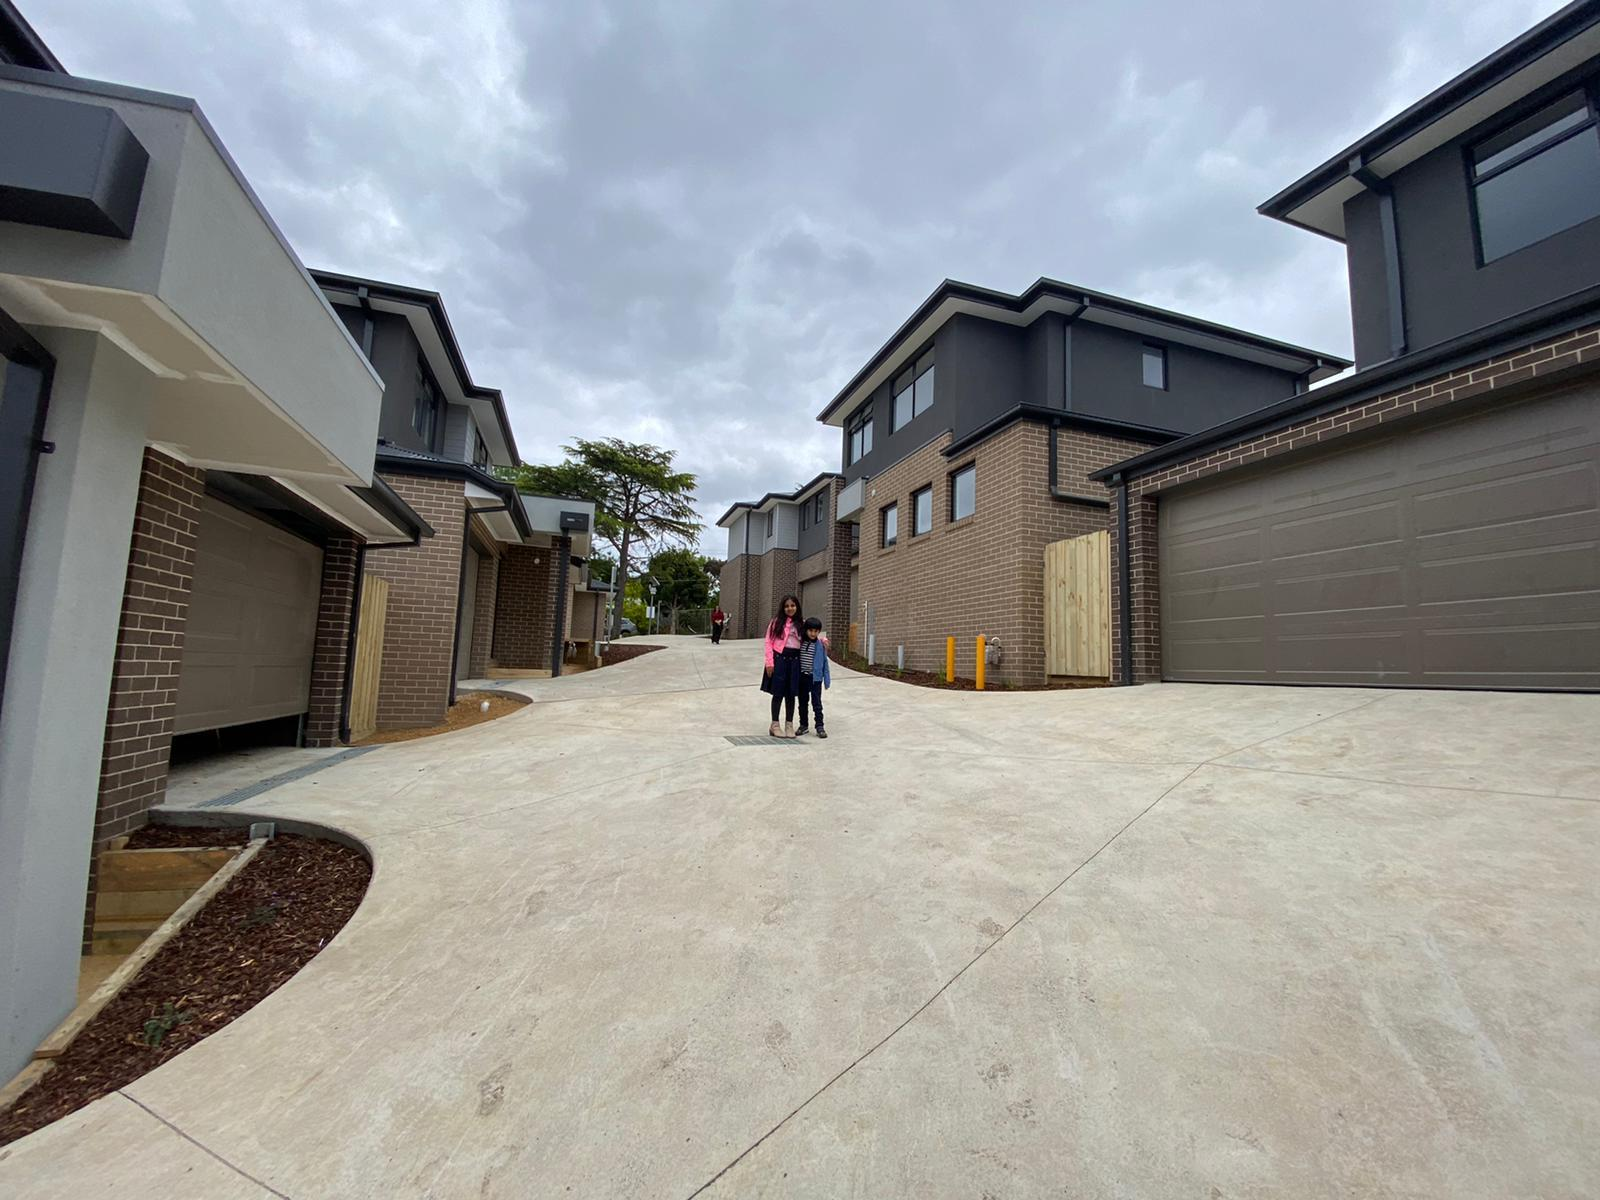 Summit court, mooroolbark